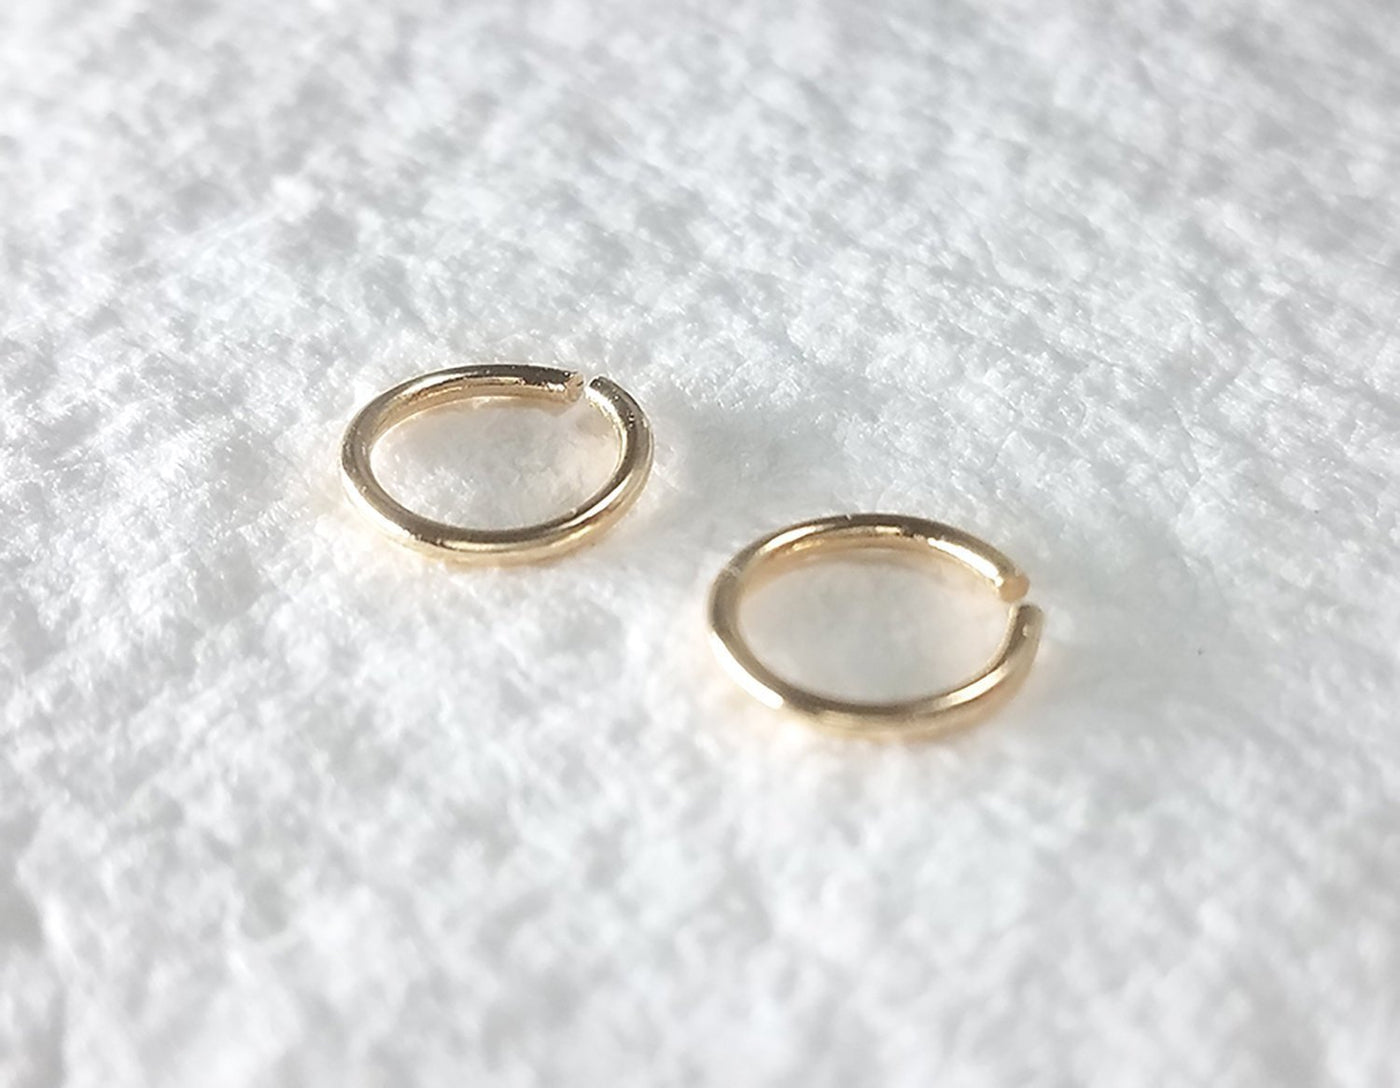 14k yellow gold hoops, round earrings, small hoops, everyday earrings, karat1424